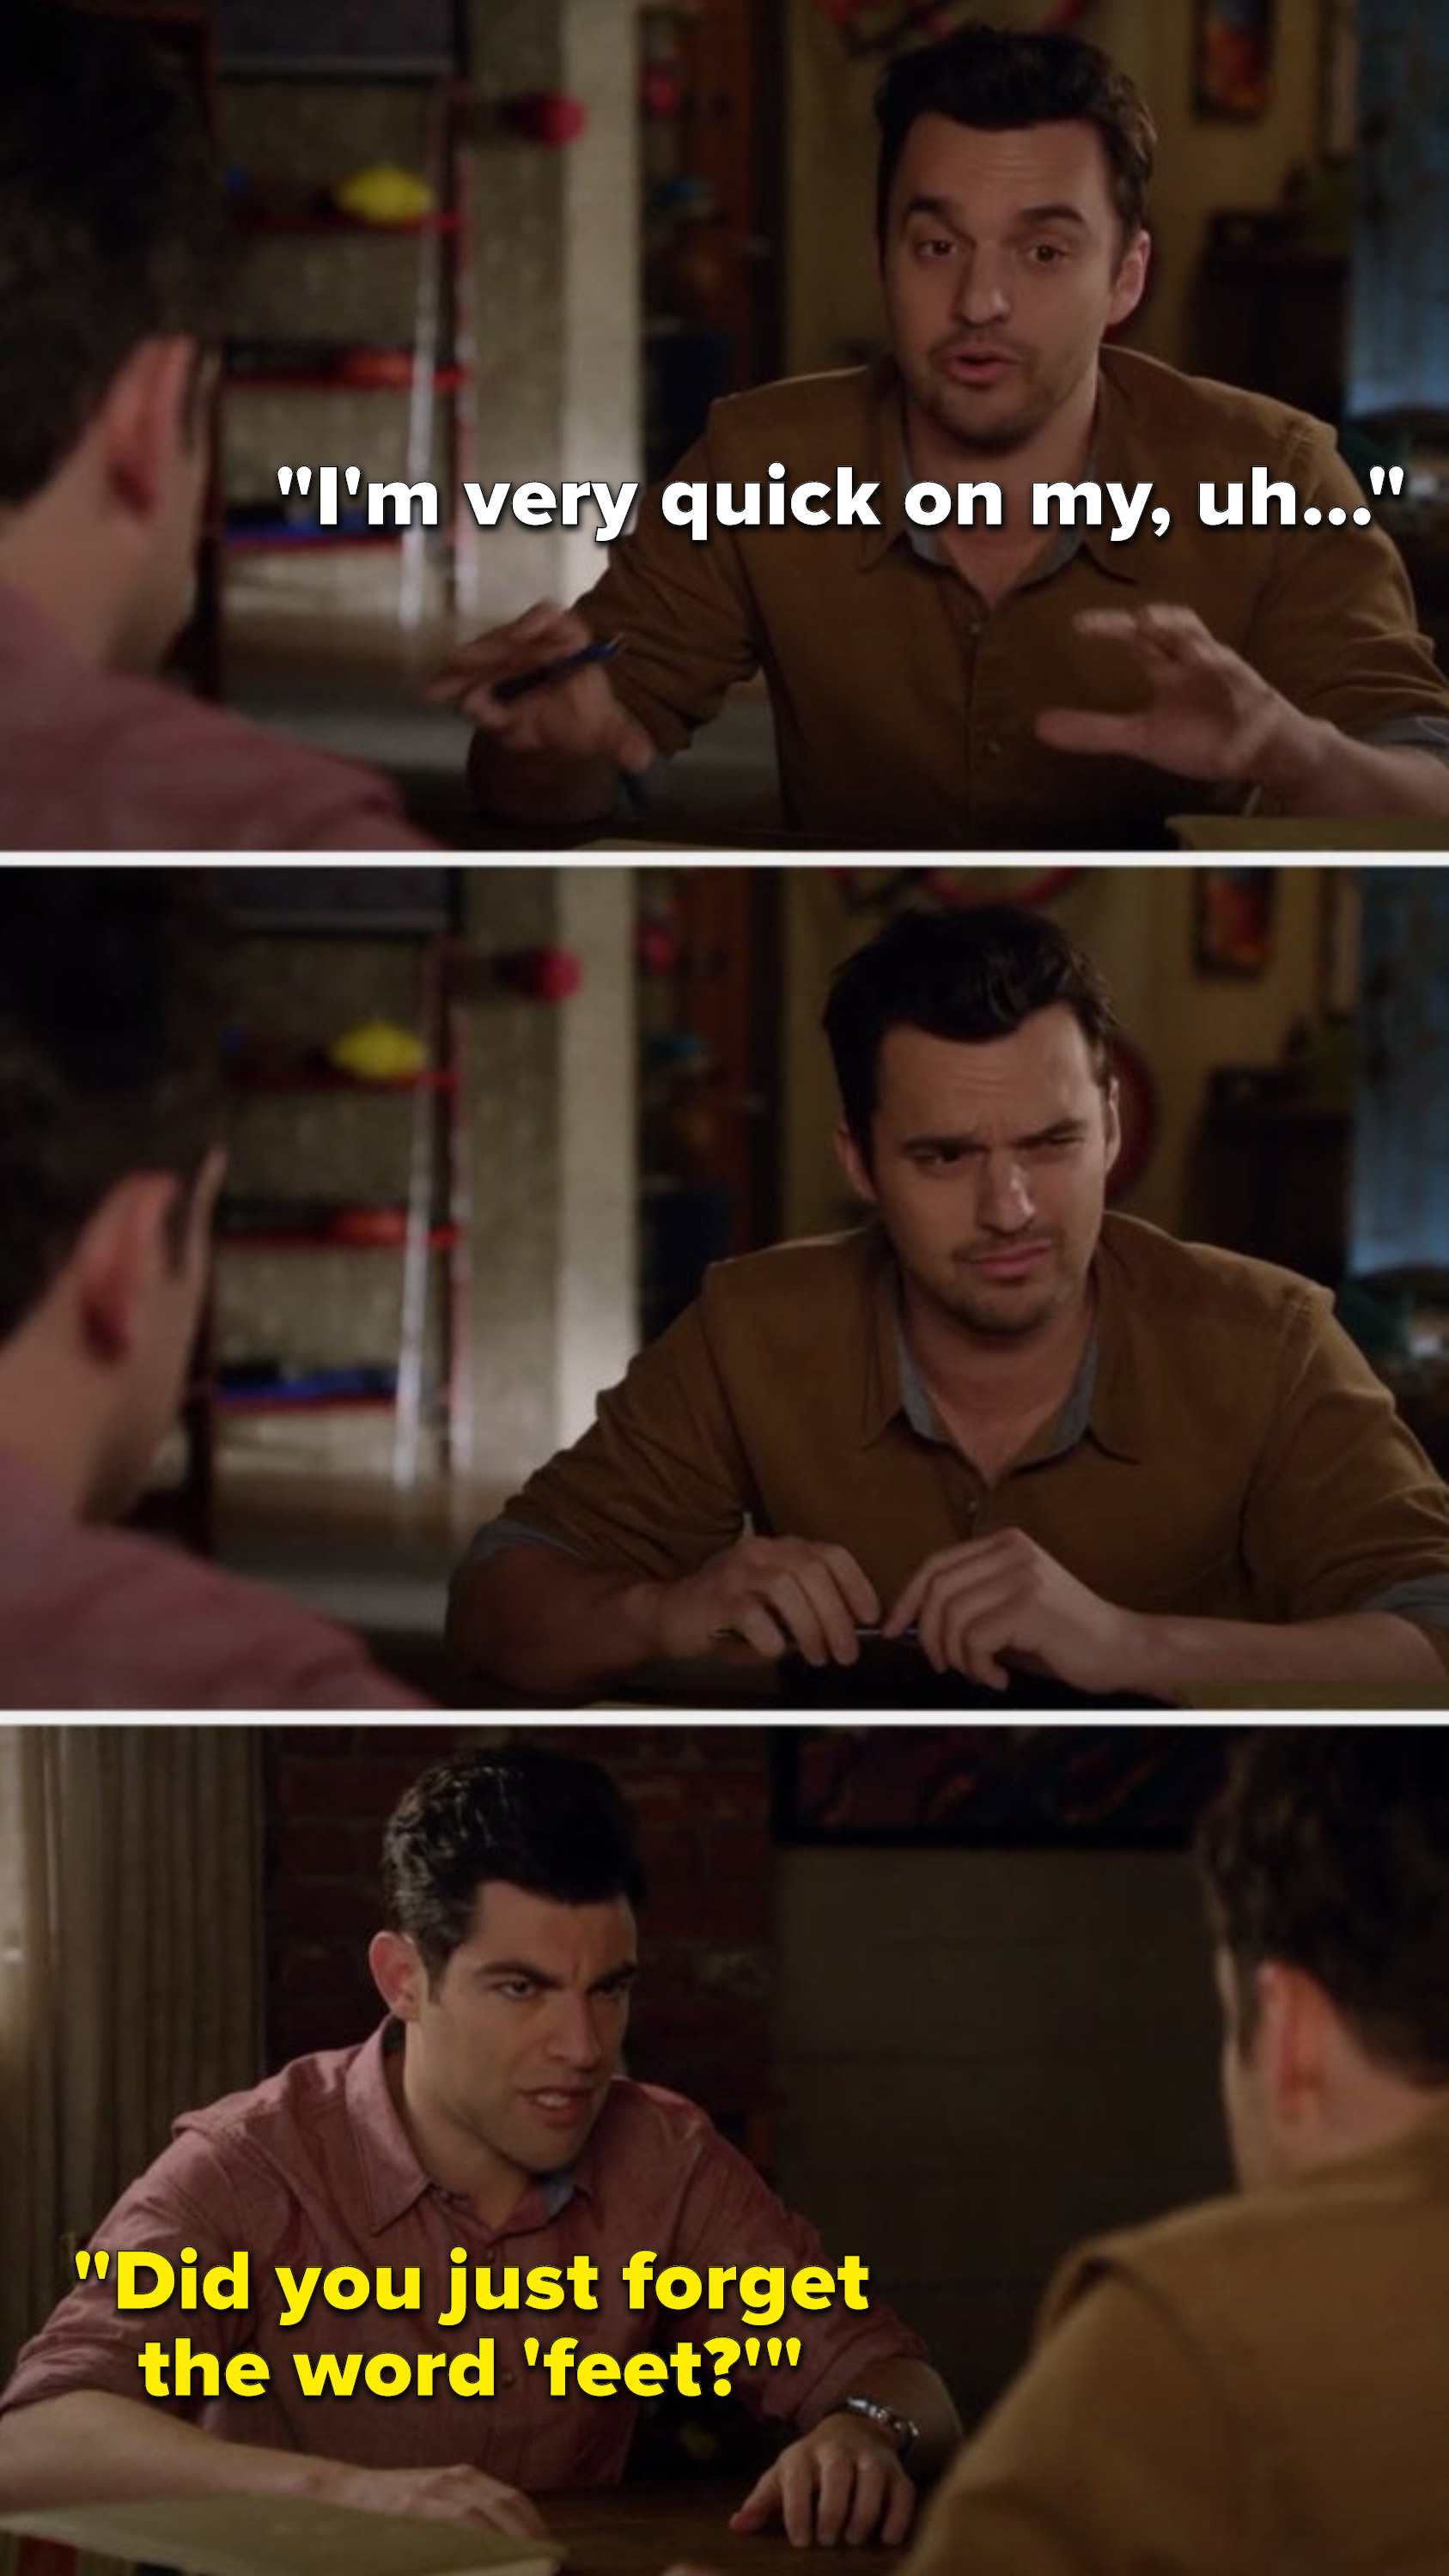 Nick says, I'm very quick on my, uh, he thinks, and Schmidt says, Did you just forget the word feet